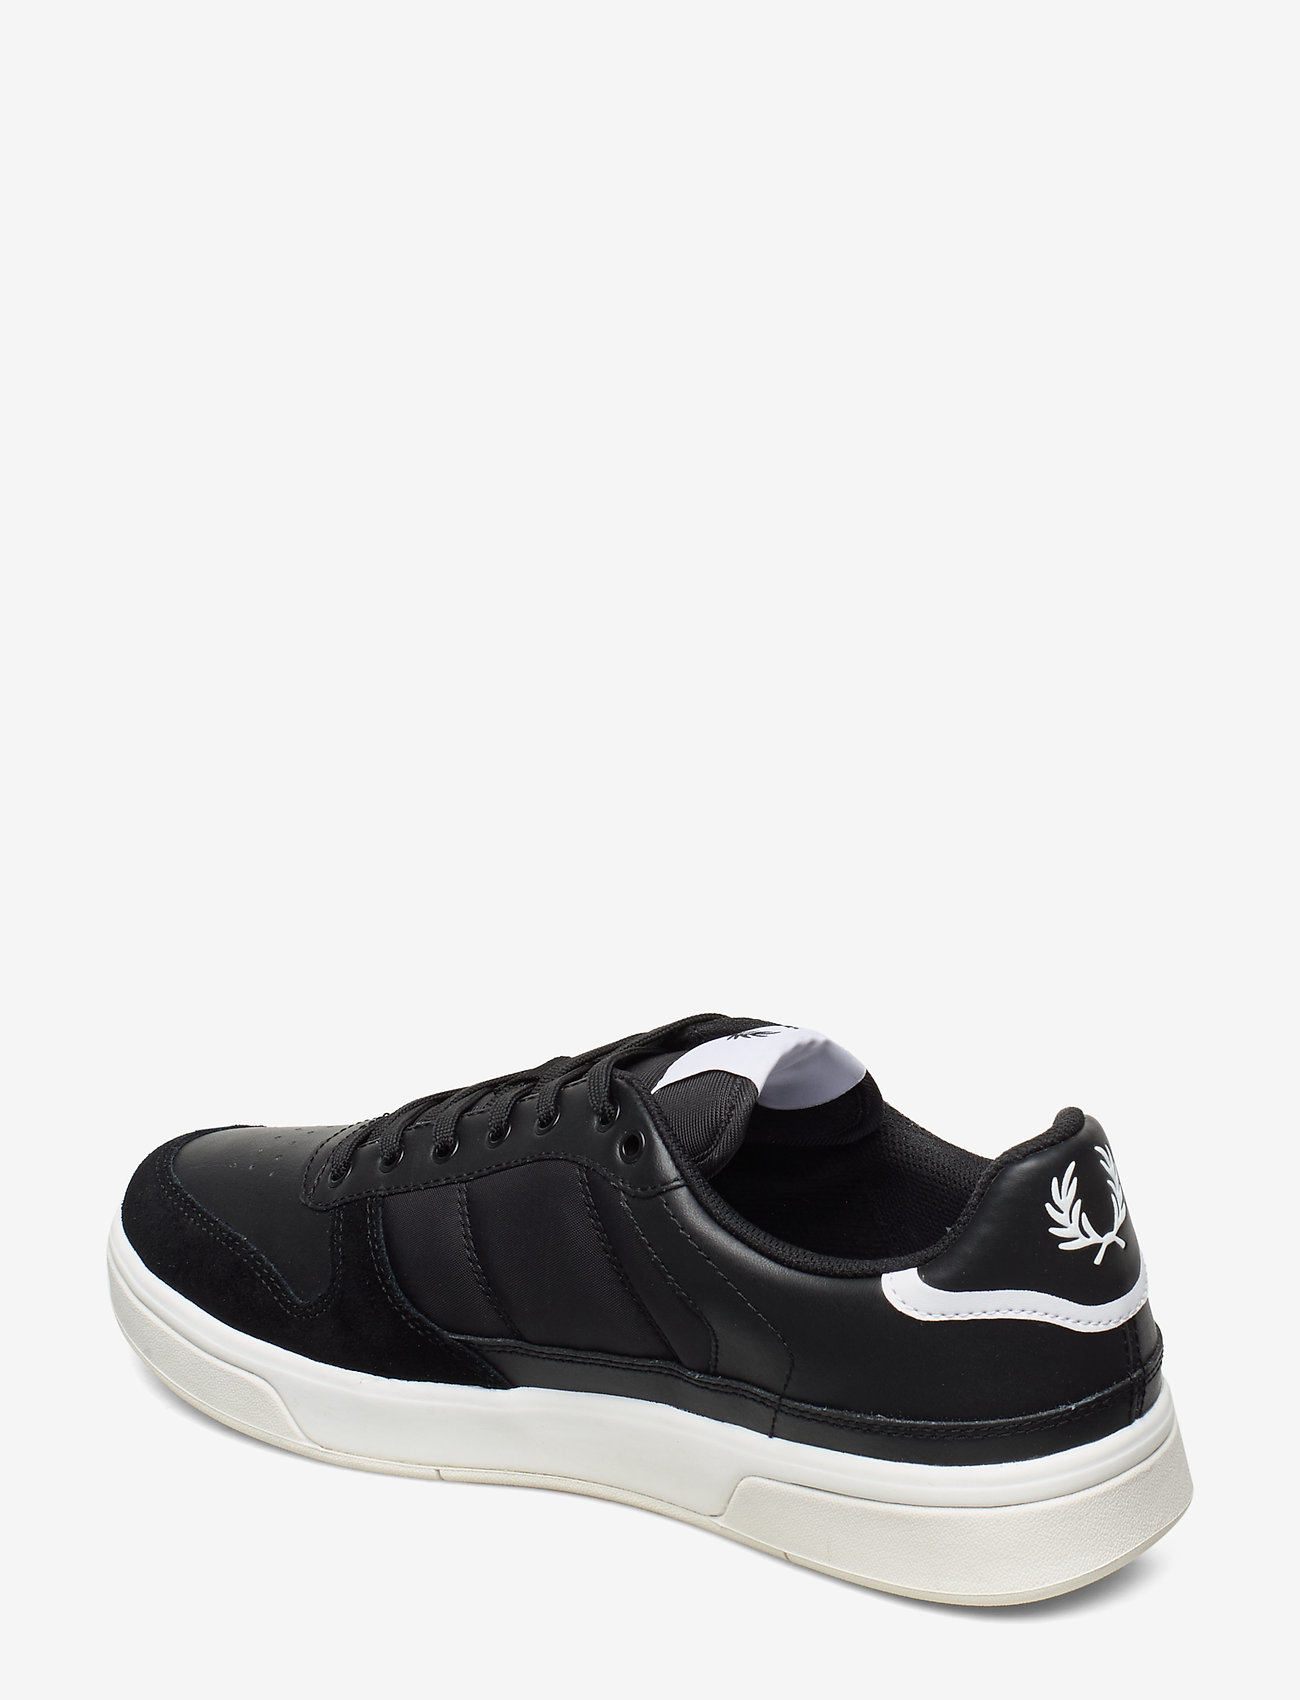 B300 Leather/poly (Black) - Fred Perry